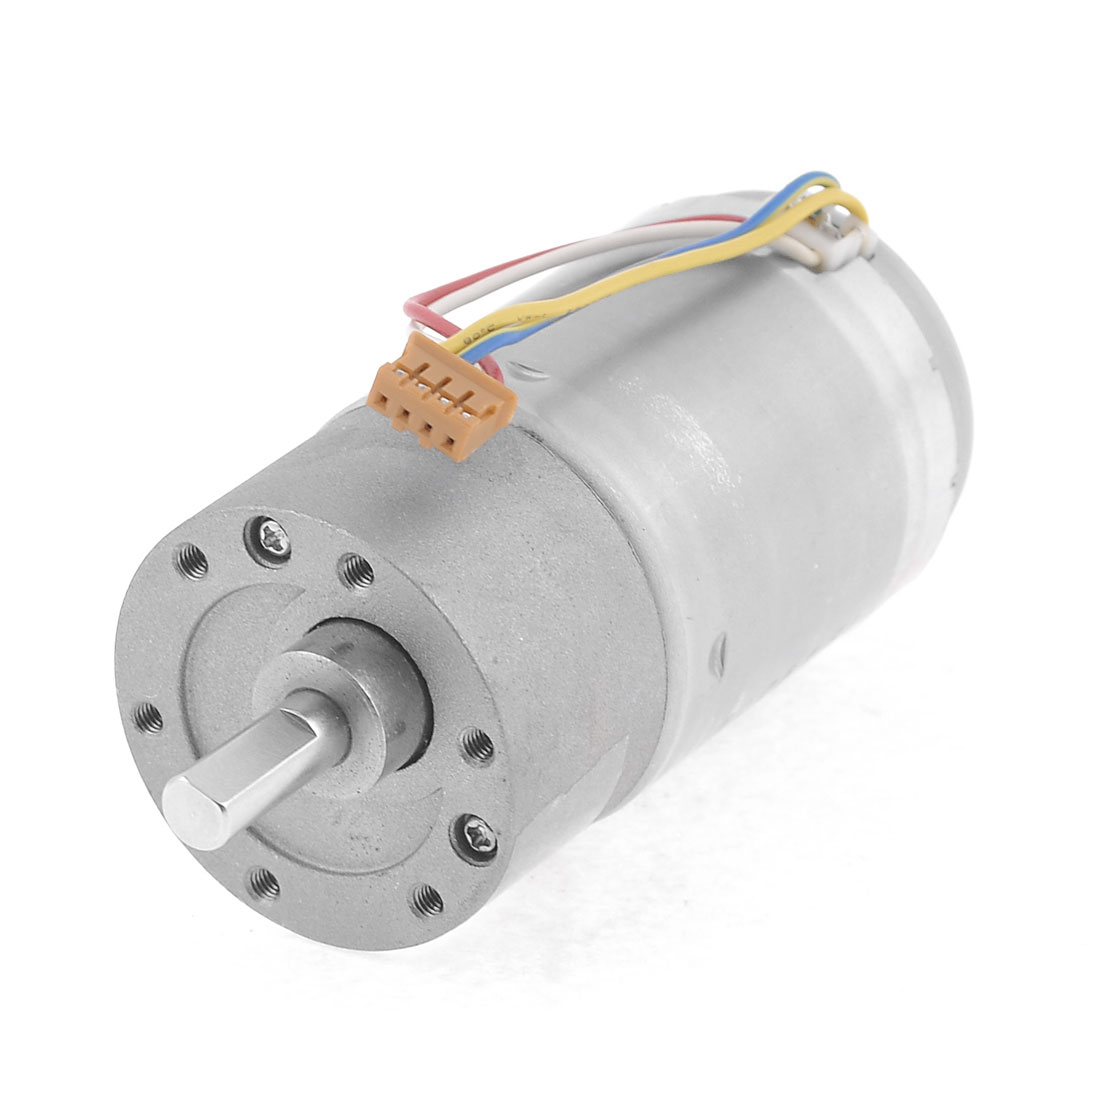 200RPM Synchronous Reduction High Torque Electric Geared Motor 12VDC